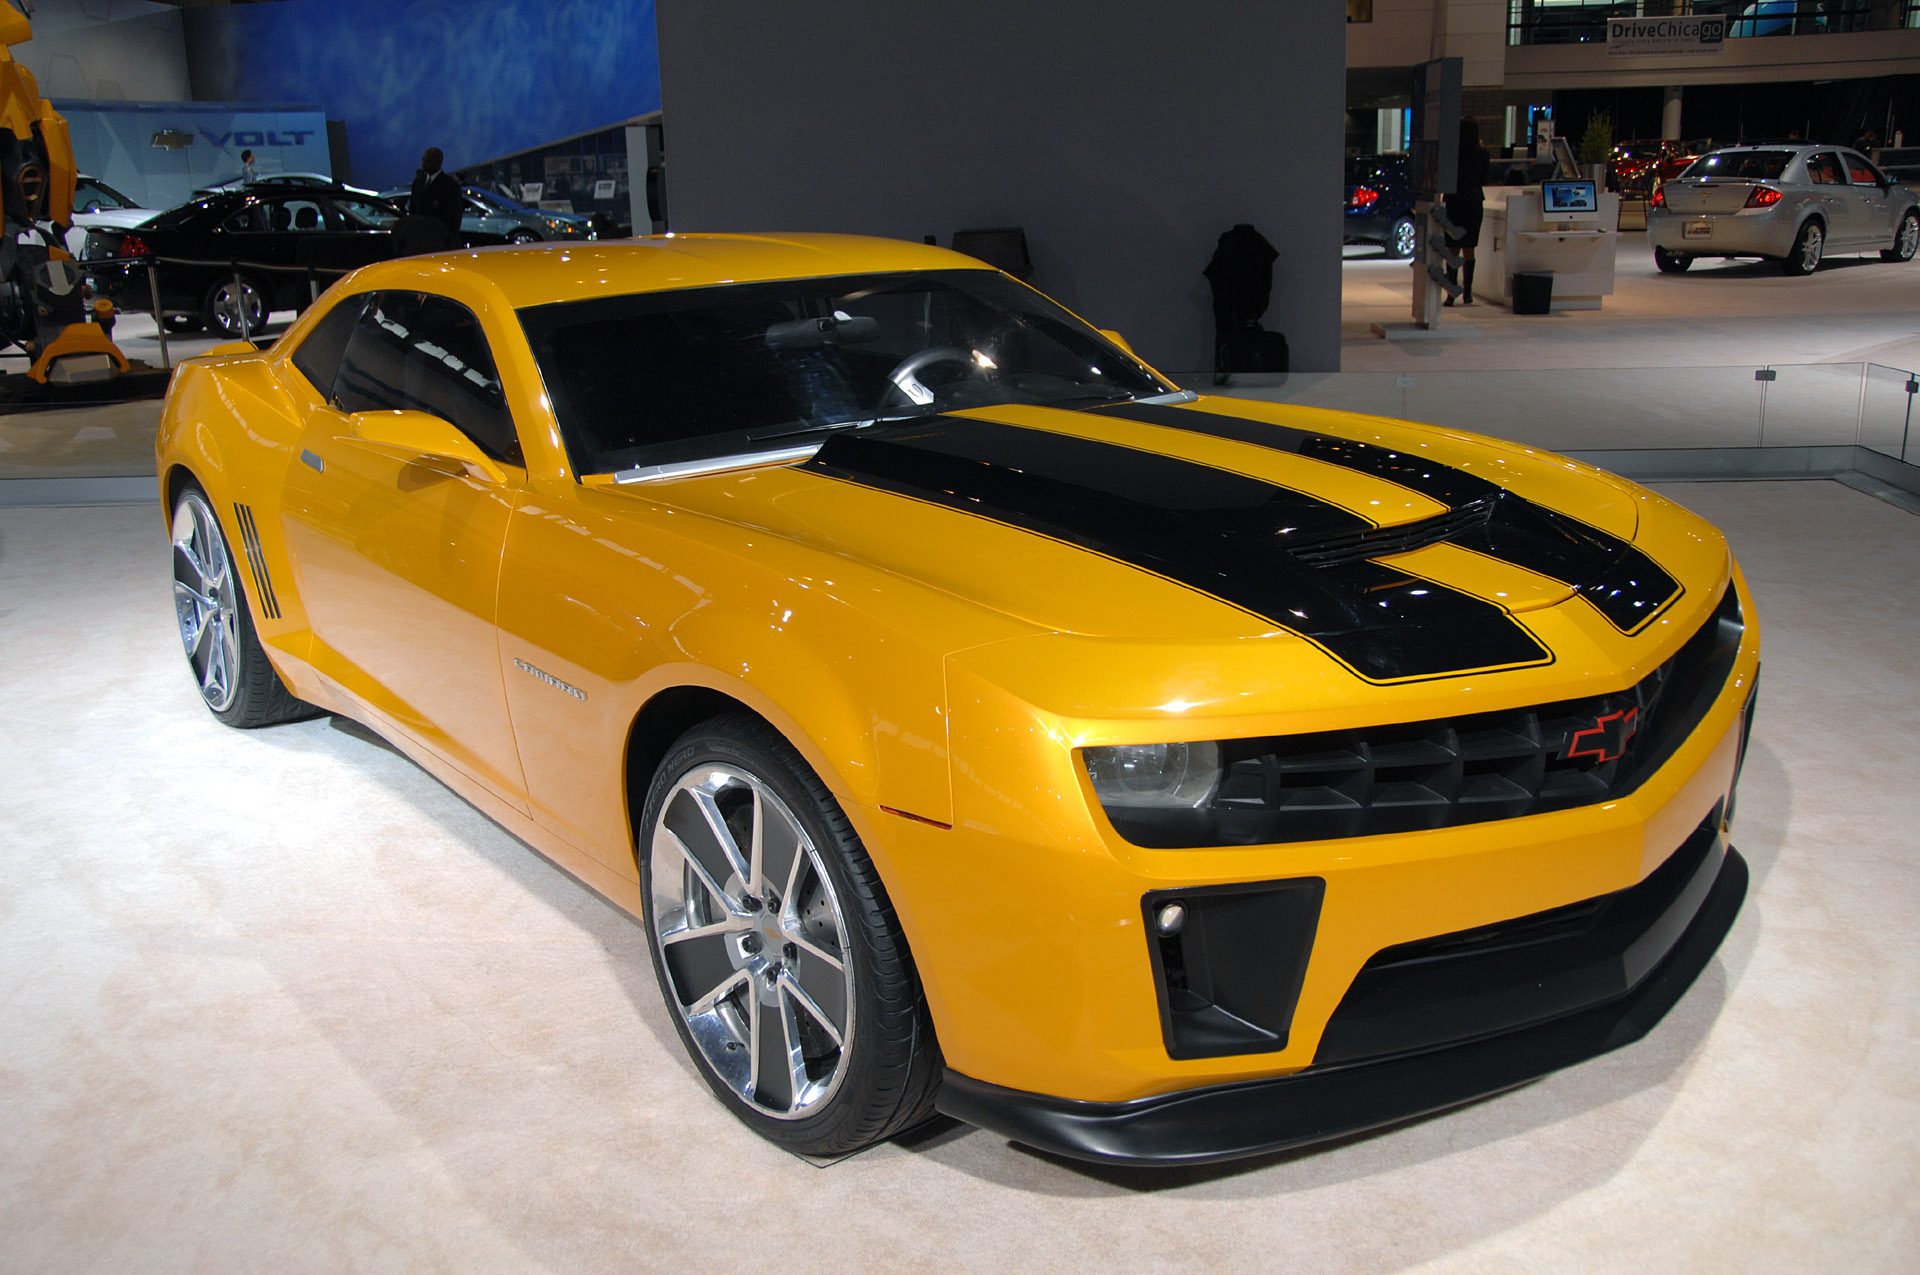 Chevy Images Blebee Camaro Hd Wallpaper And Background Photos